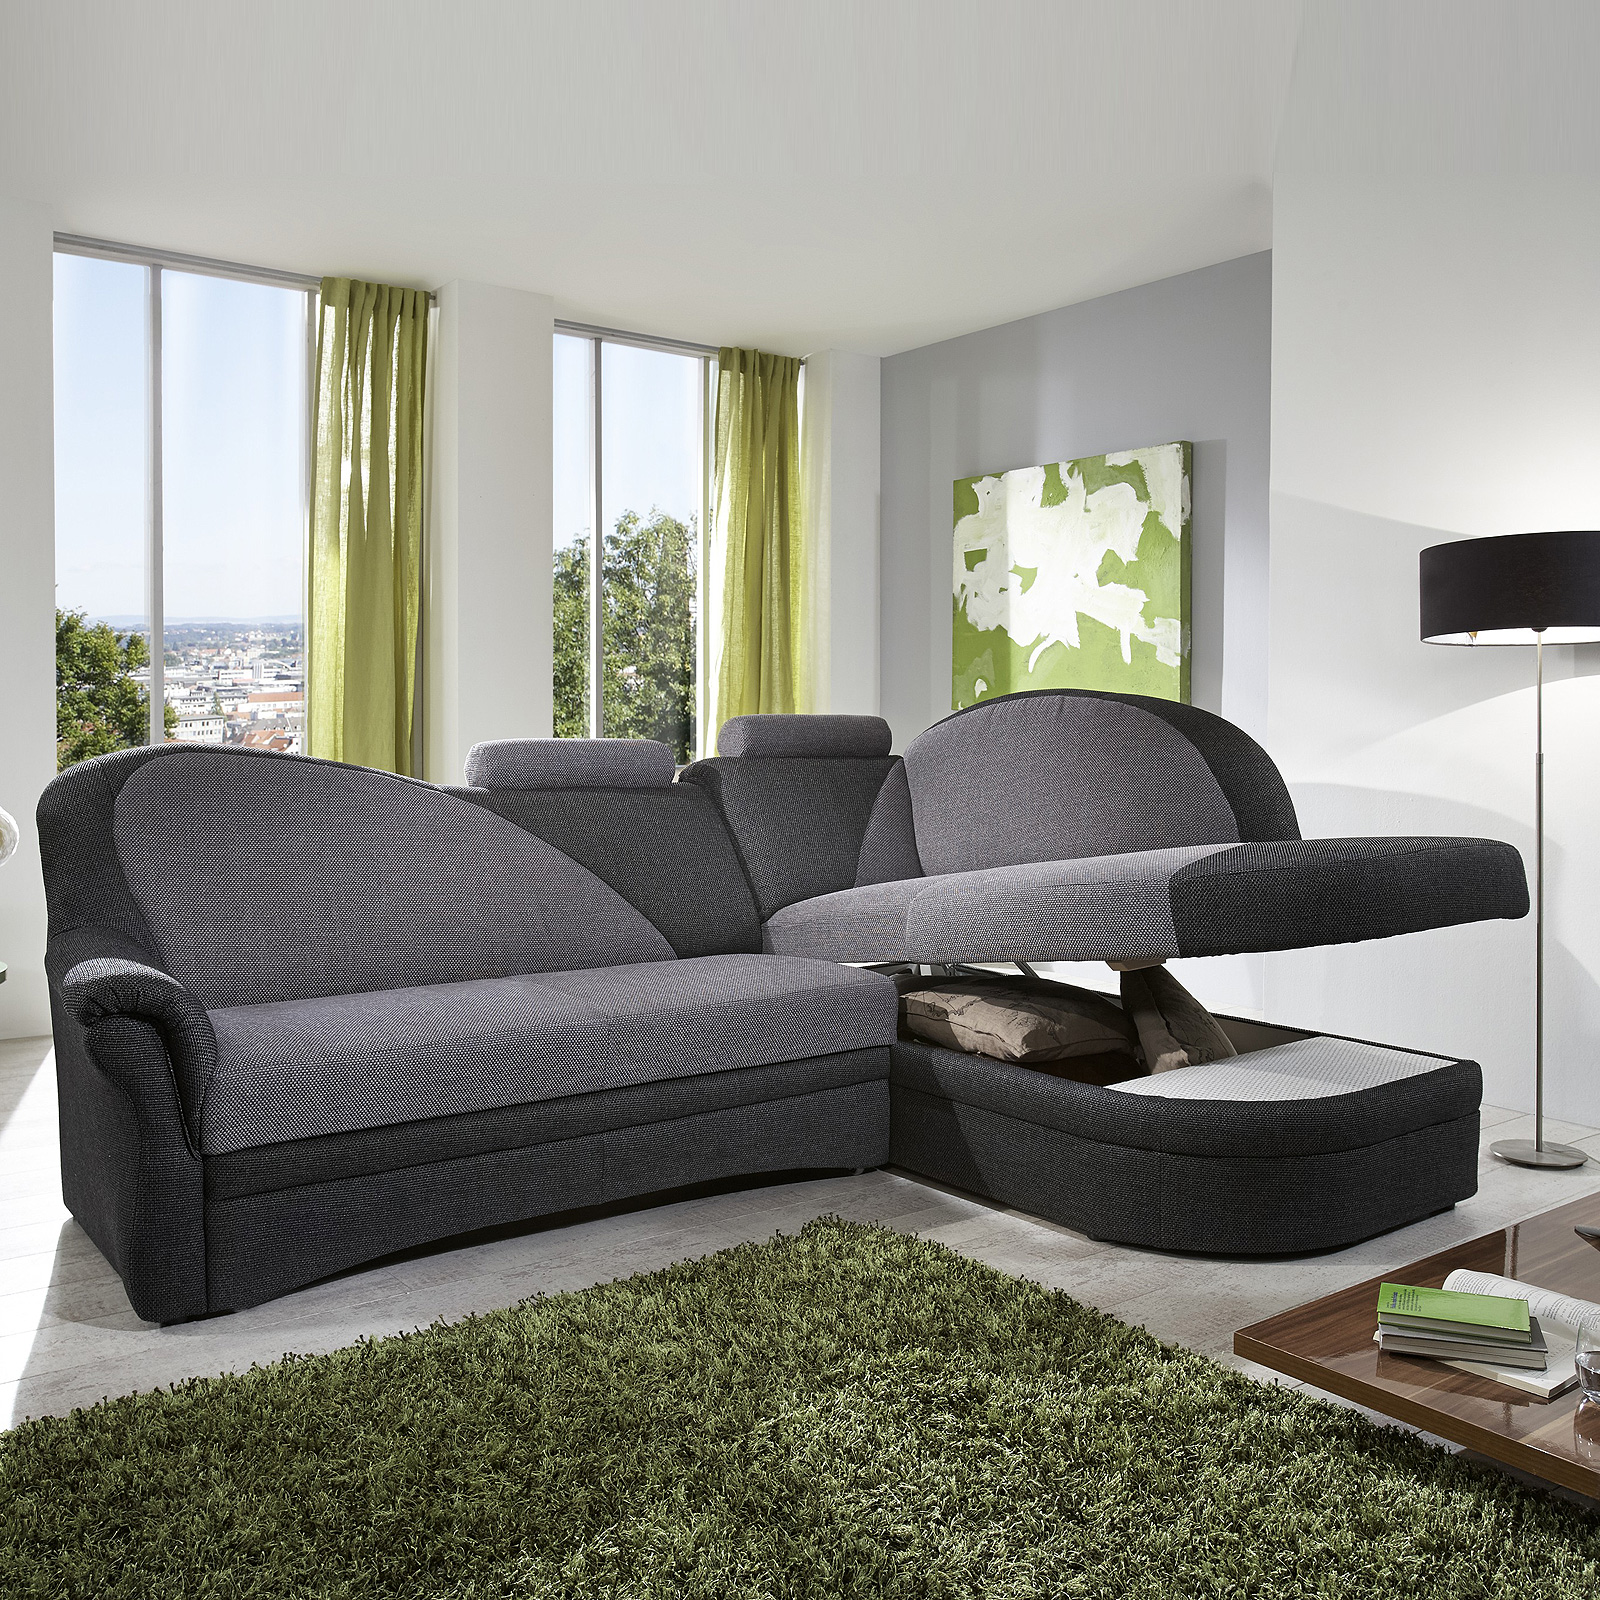 ecksofa helsinki wohnlandschaft sofa mit funktion. Black Bedroom Furniture Sets. Home Design Ideas